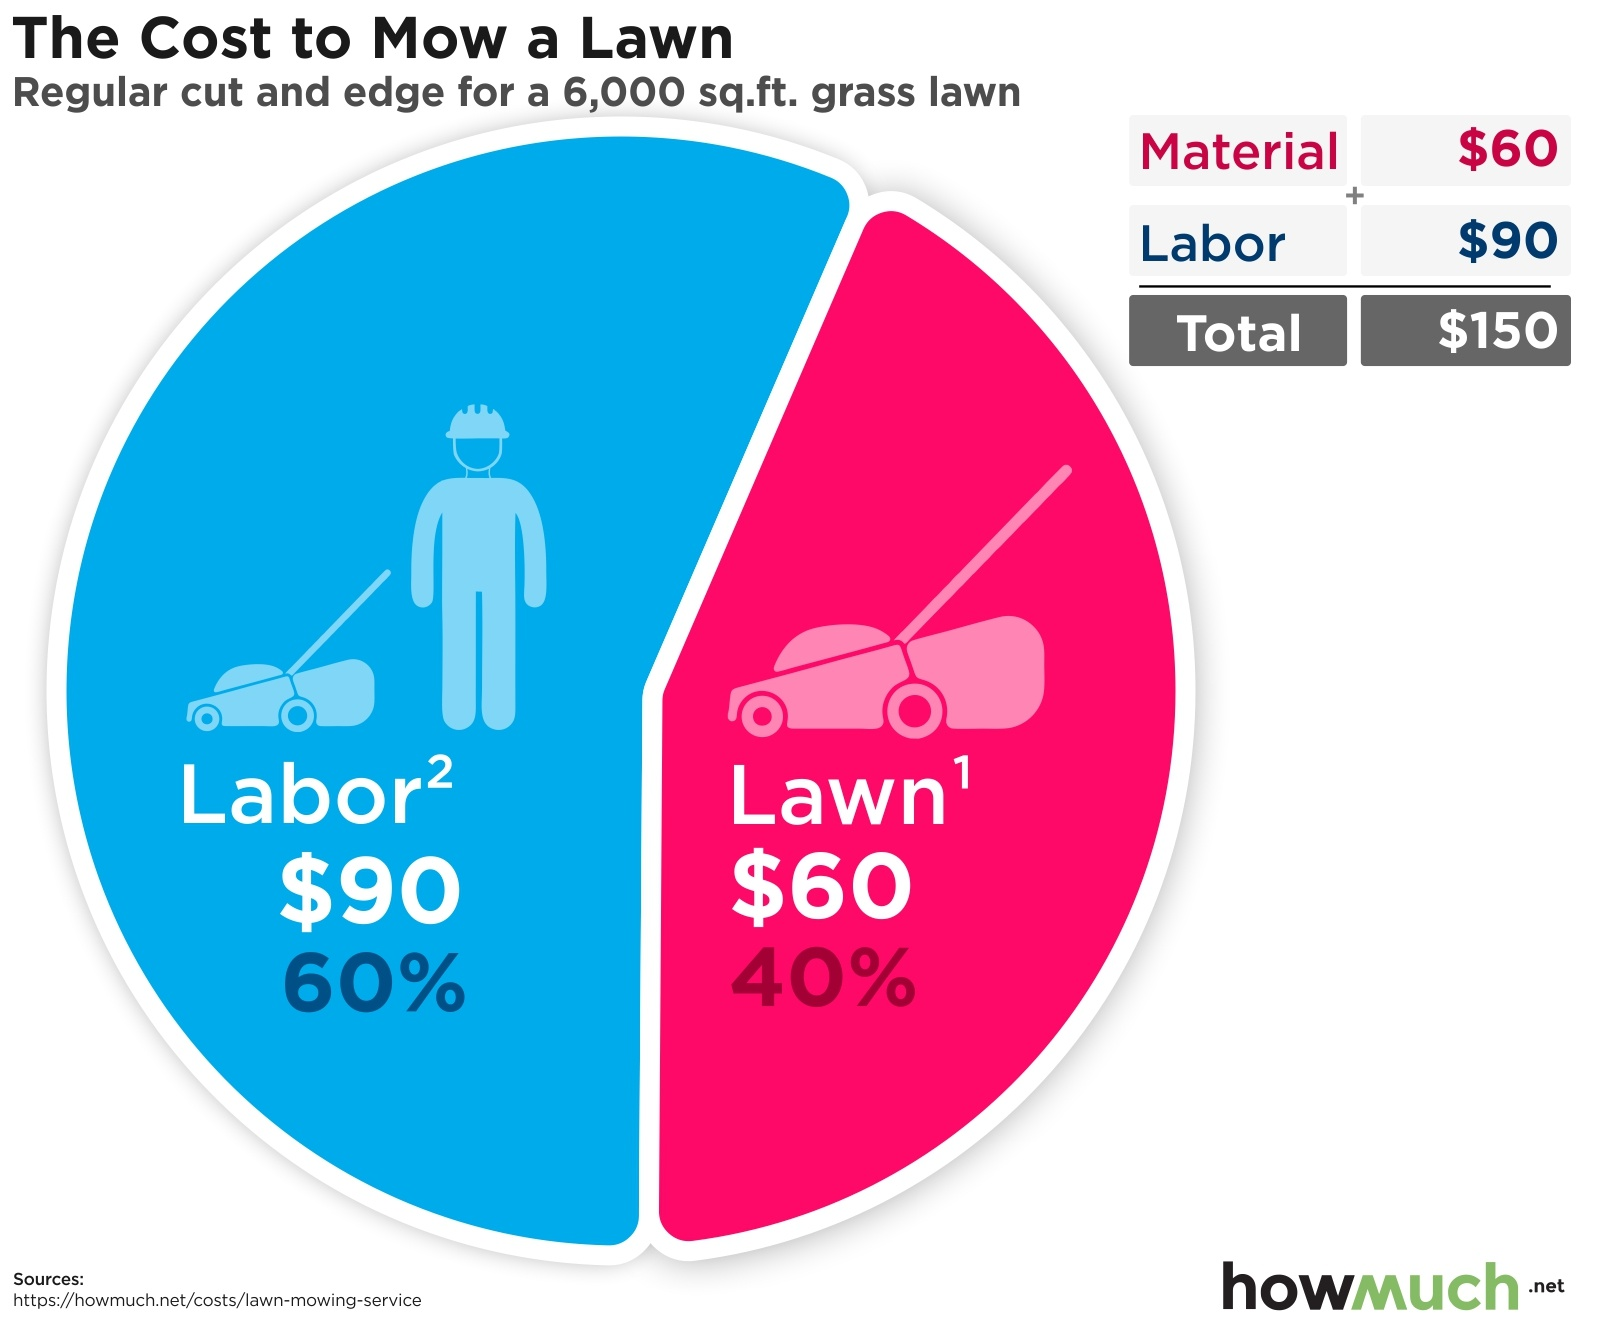 The Cost to Mow a Lawn